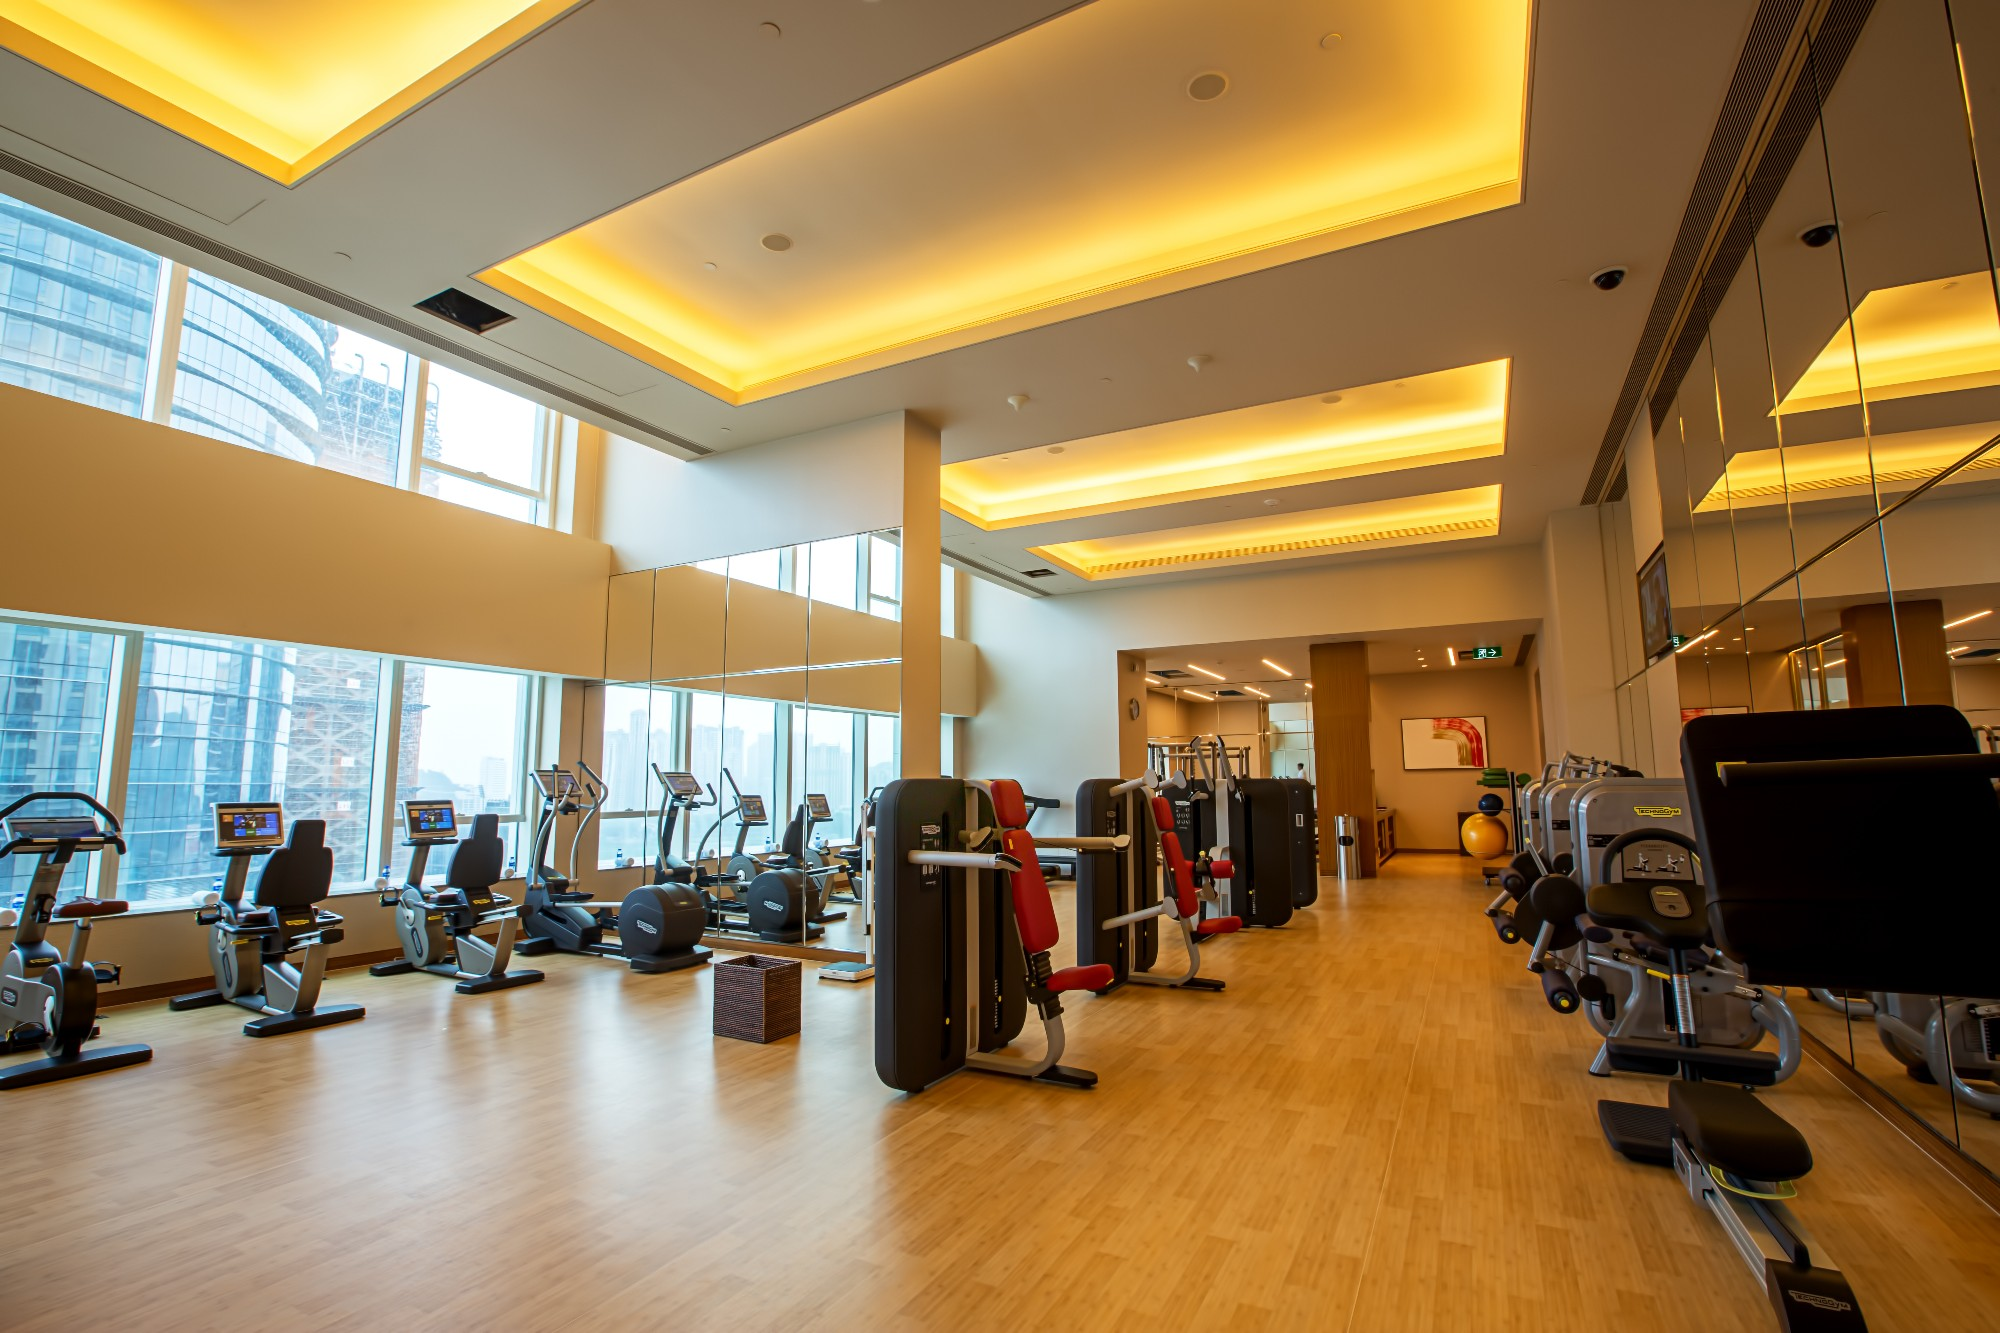 St Regis Spa & Gym